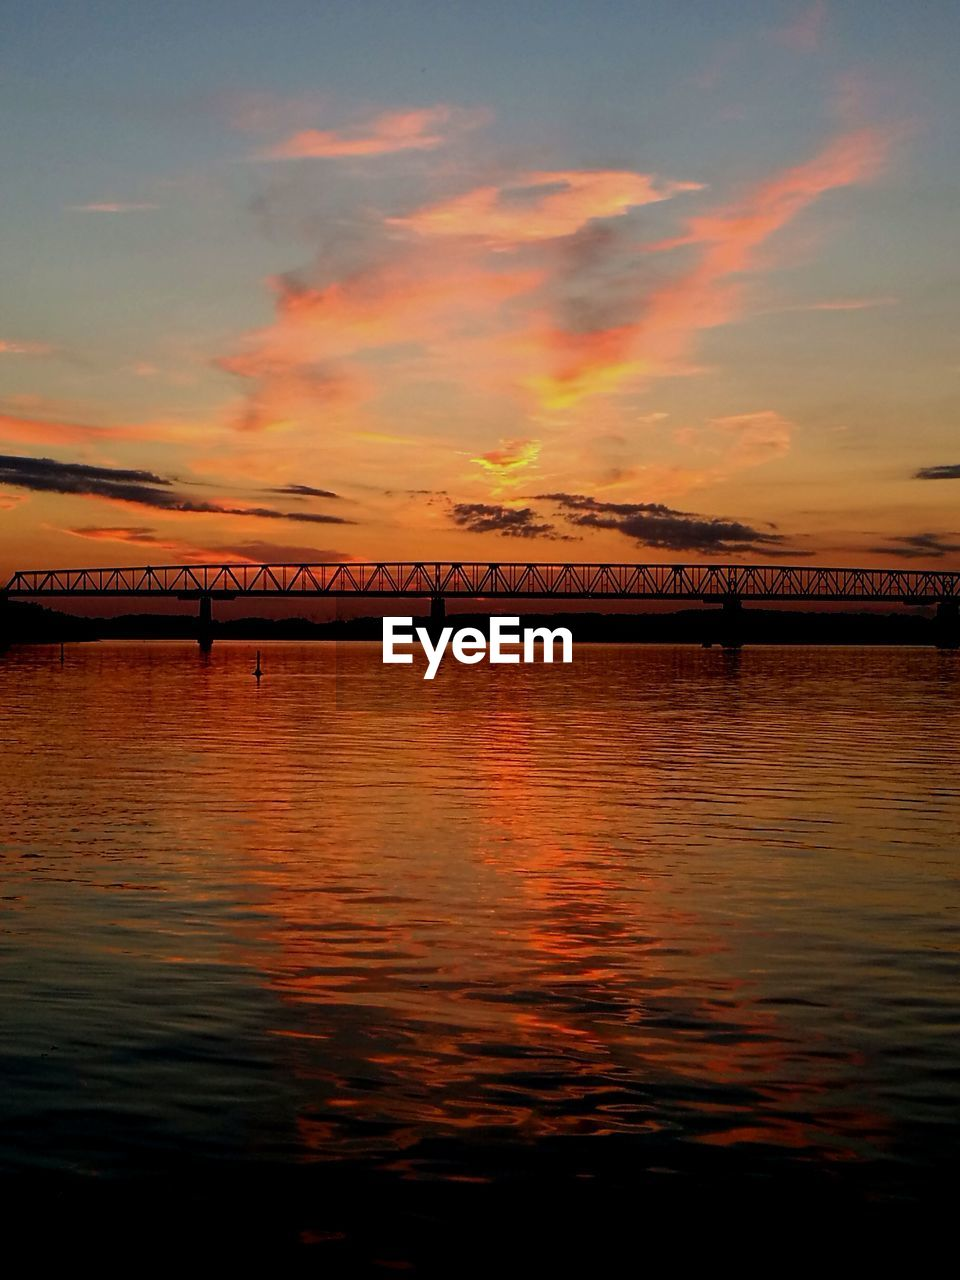 water, sky, sunset, cloud - sky, scenics - nature, waterfront, beauty in nature, bridge, transportation, orange color, nature, no people, reflection, bridge - man made structure, tranquil scene, connection, tranquility, architecture, sea, outdoors